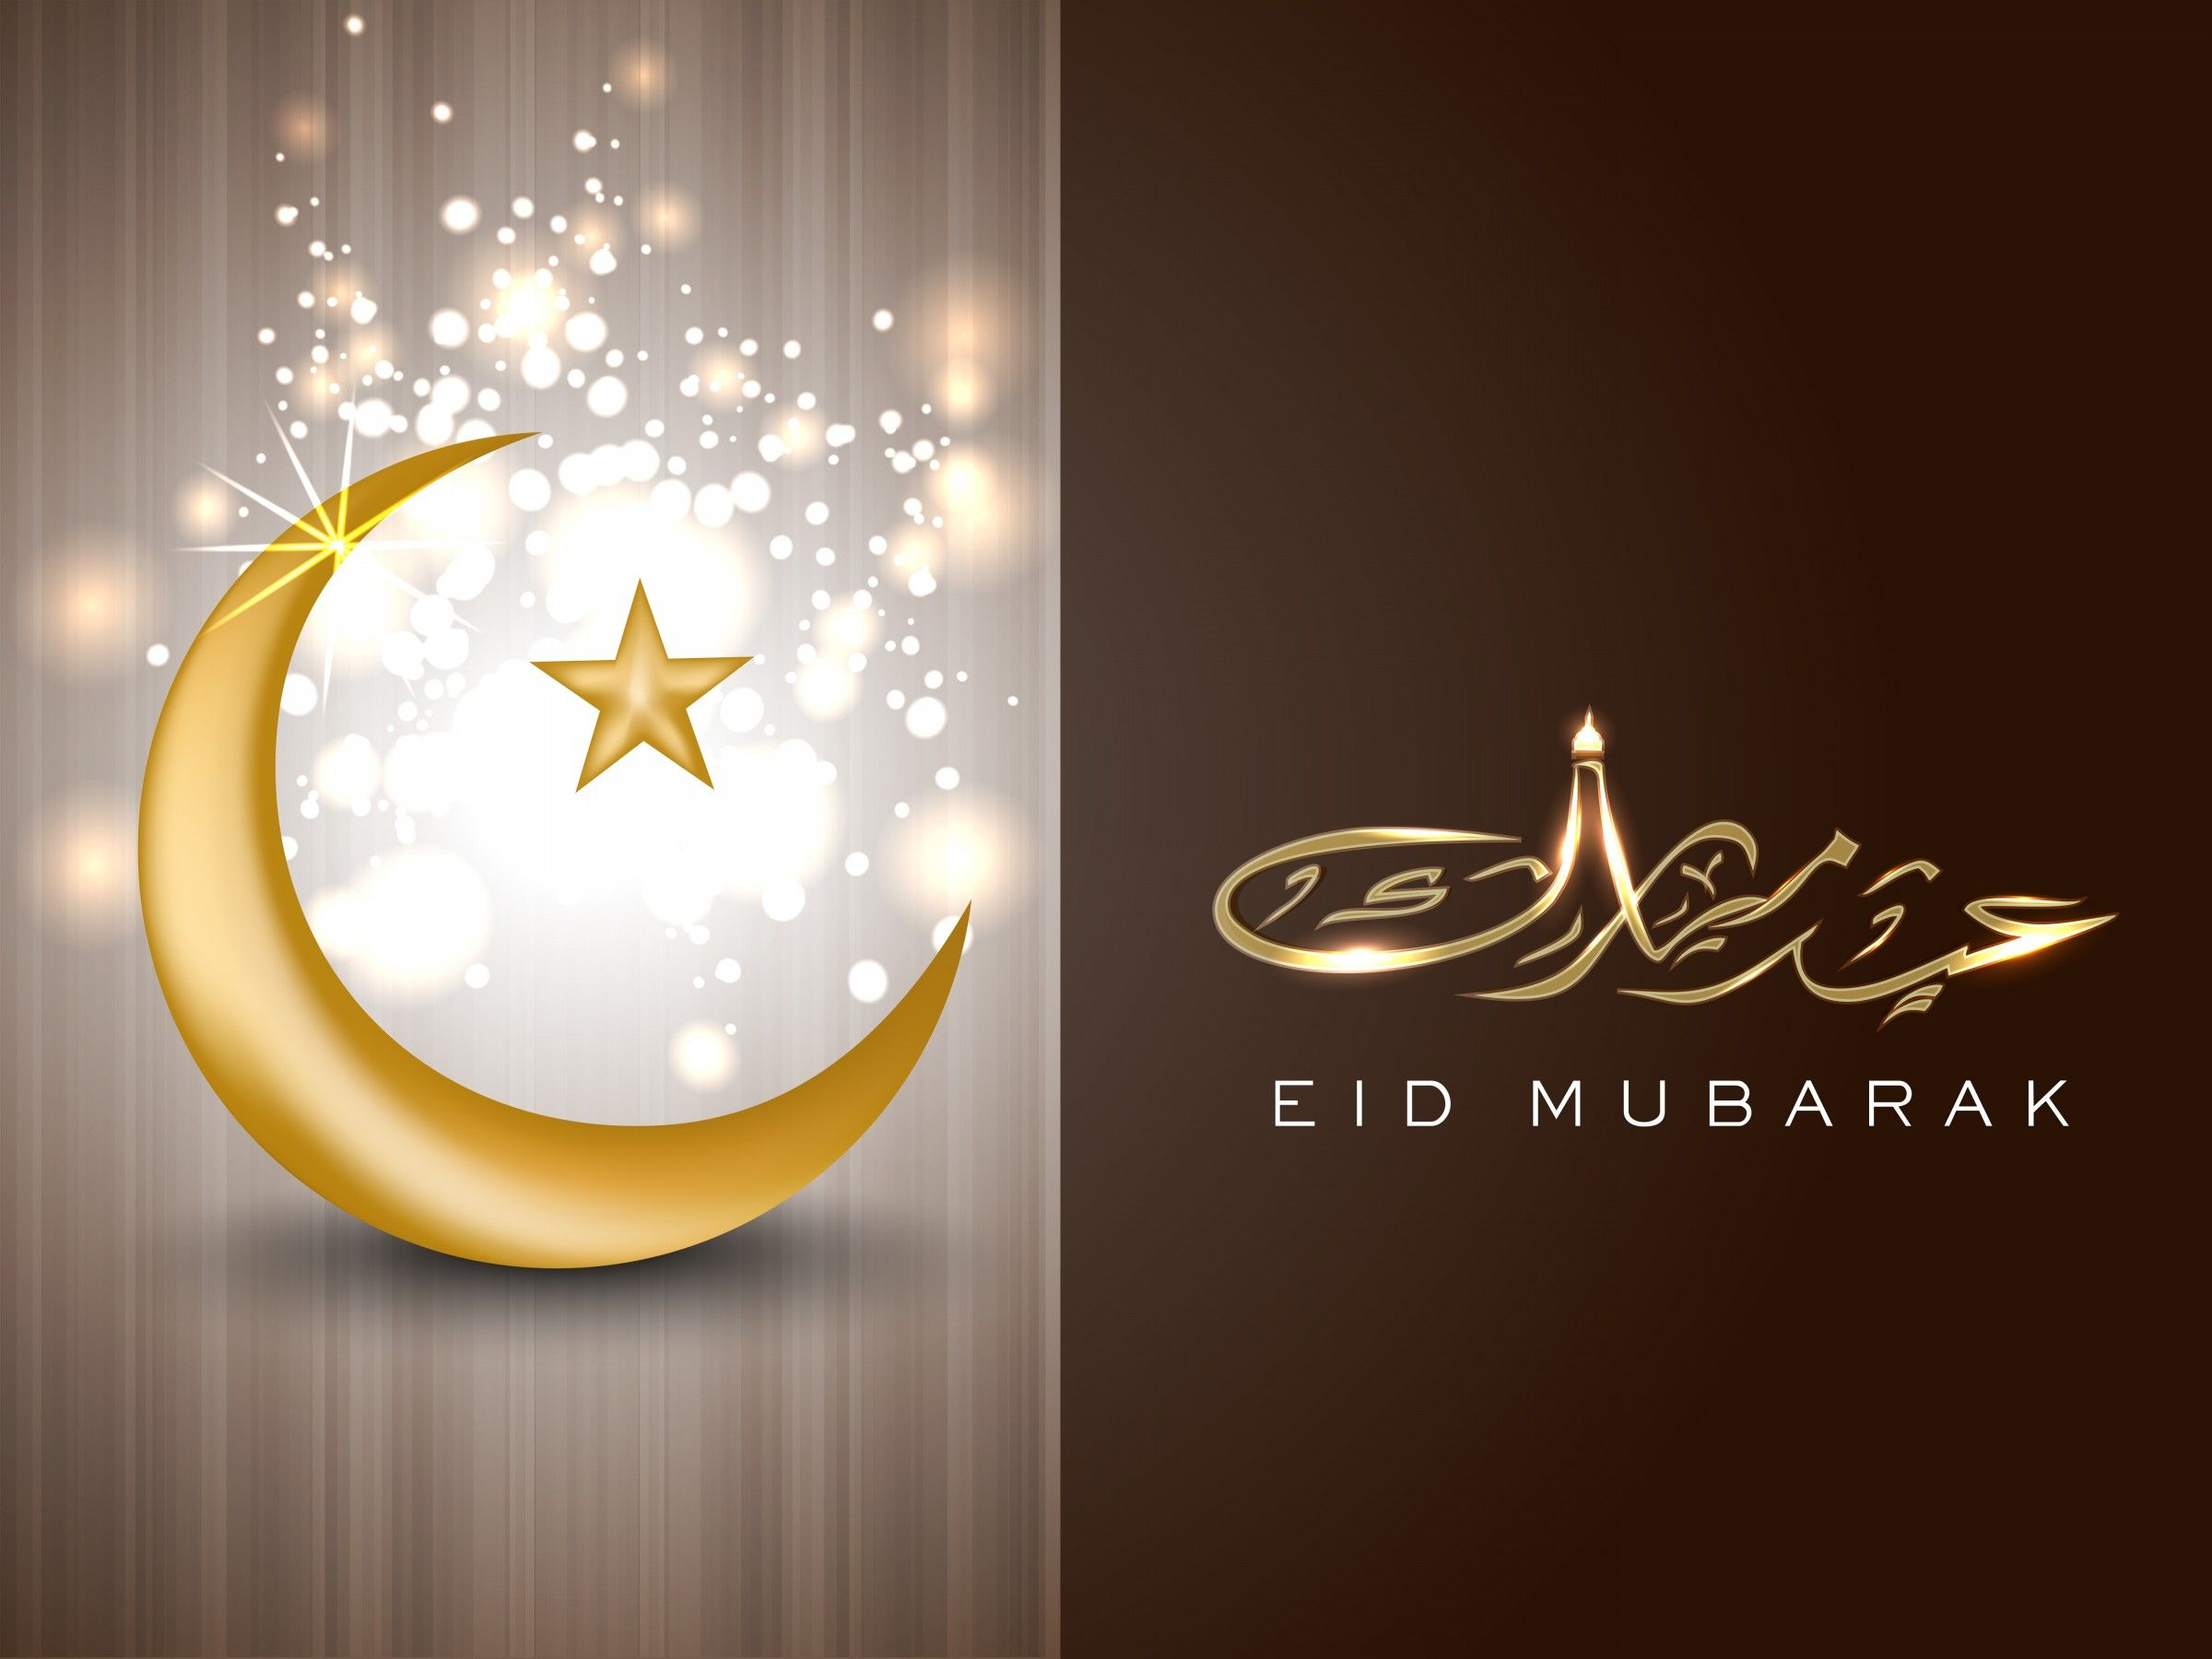 English arabic eid al adha photos hd eid mubarak shariqa english arabic eid al adha photos hd eid mubarak kristyandbryce Image collections